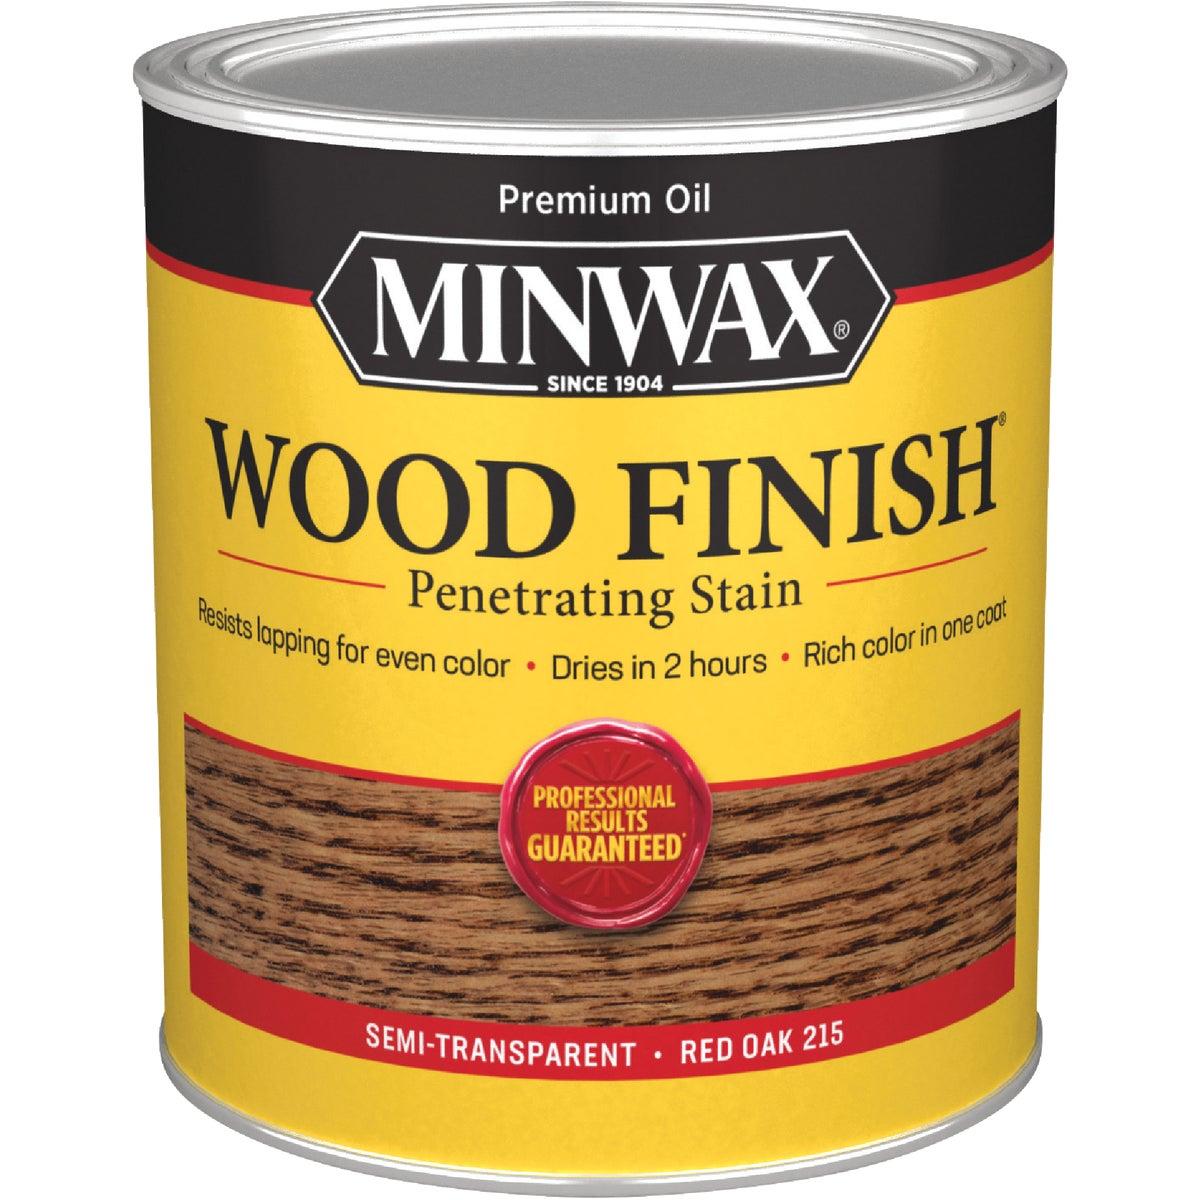 RED OAK WOOD STAIN - 70040 by Minwax Company